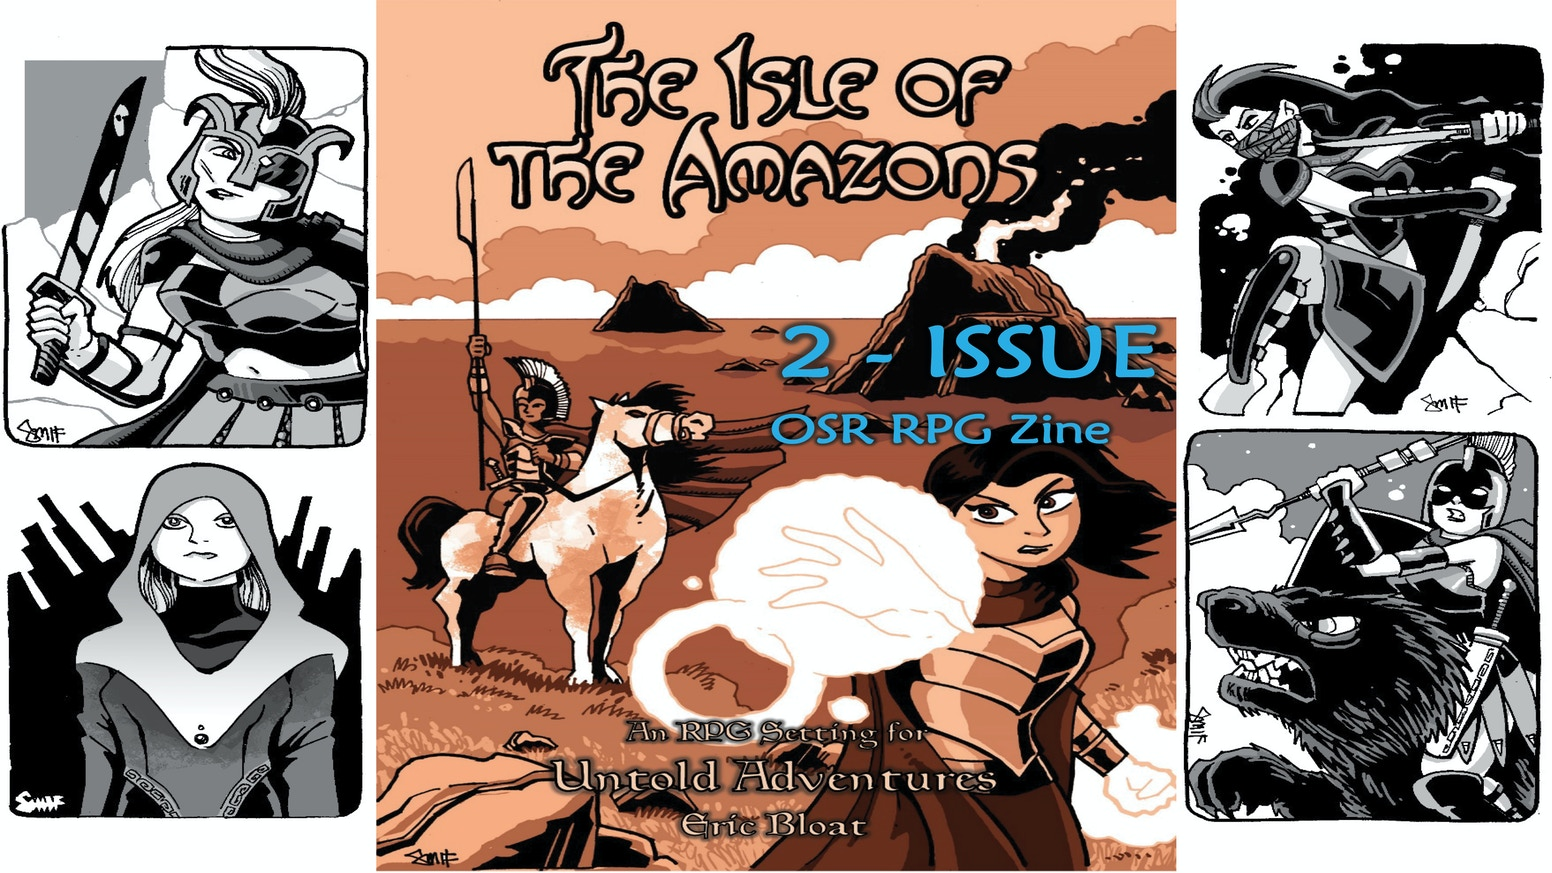 2 issue Setting for Untold Adventure and other White Box based OSR RPGs.